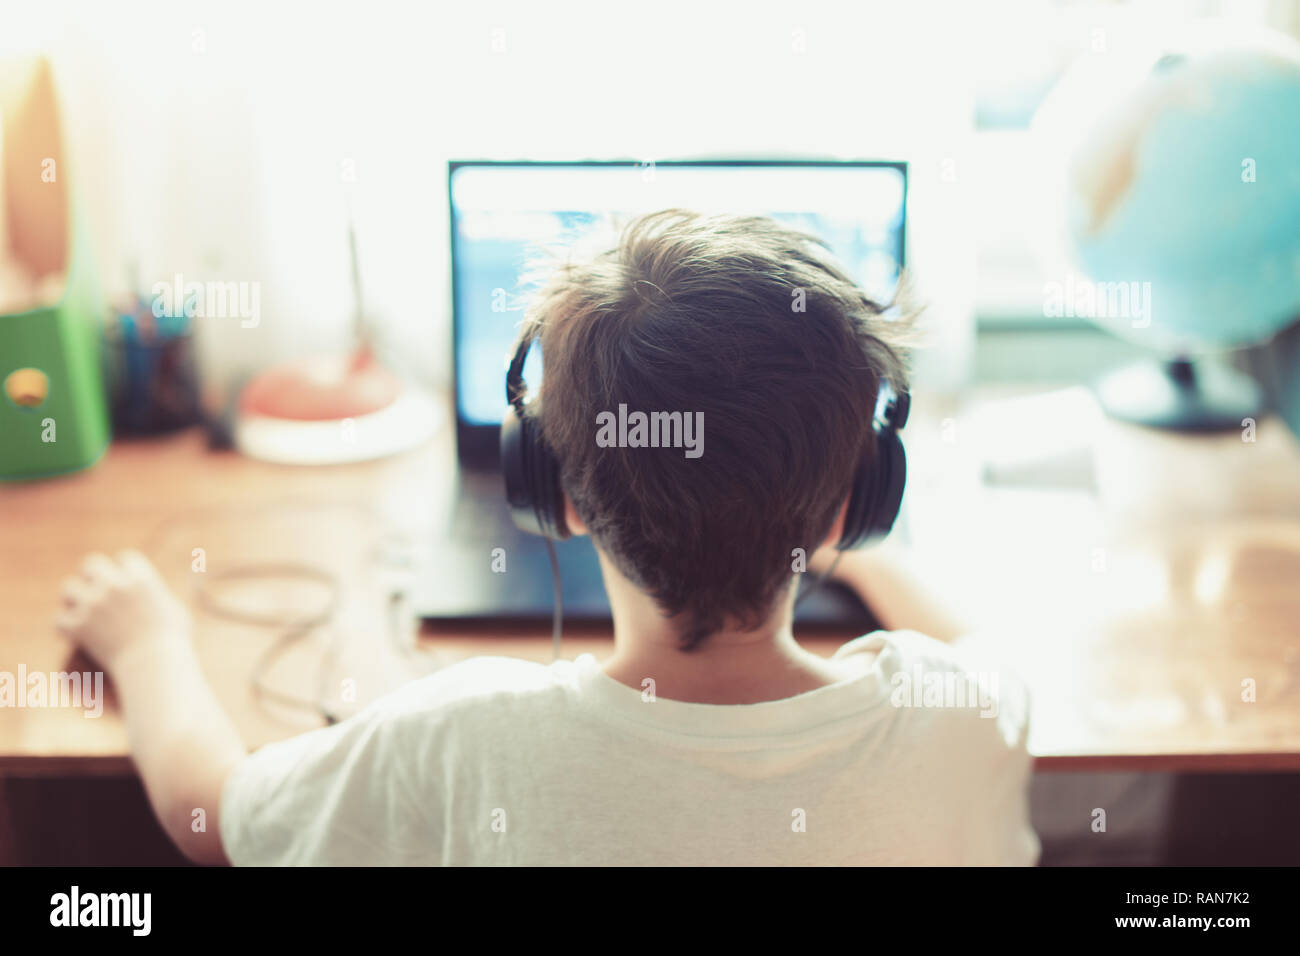 Talented gamer left handed boy playing on laptop indoors - Stock Image